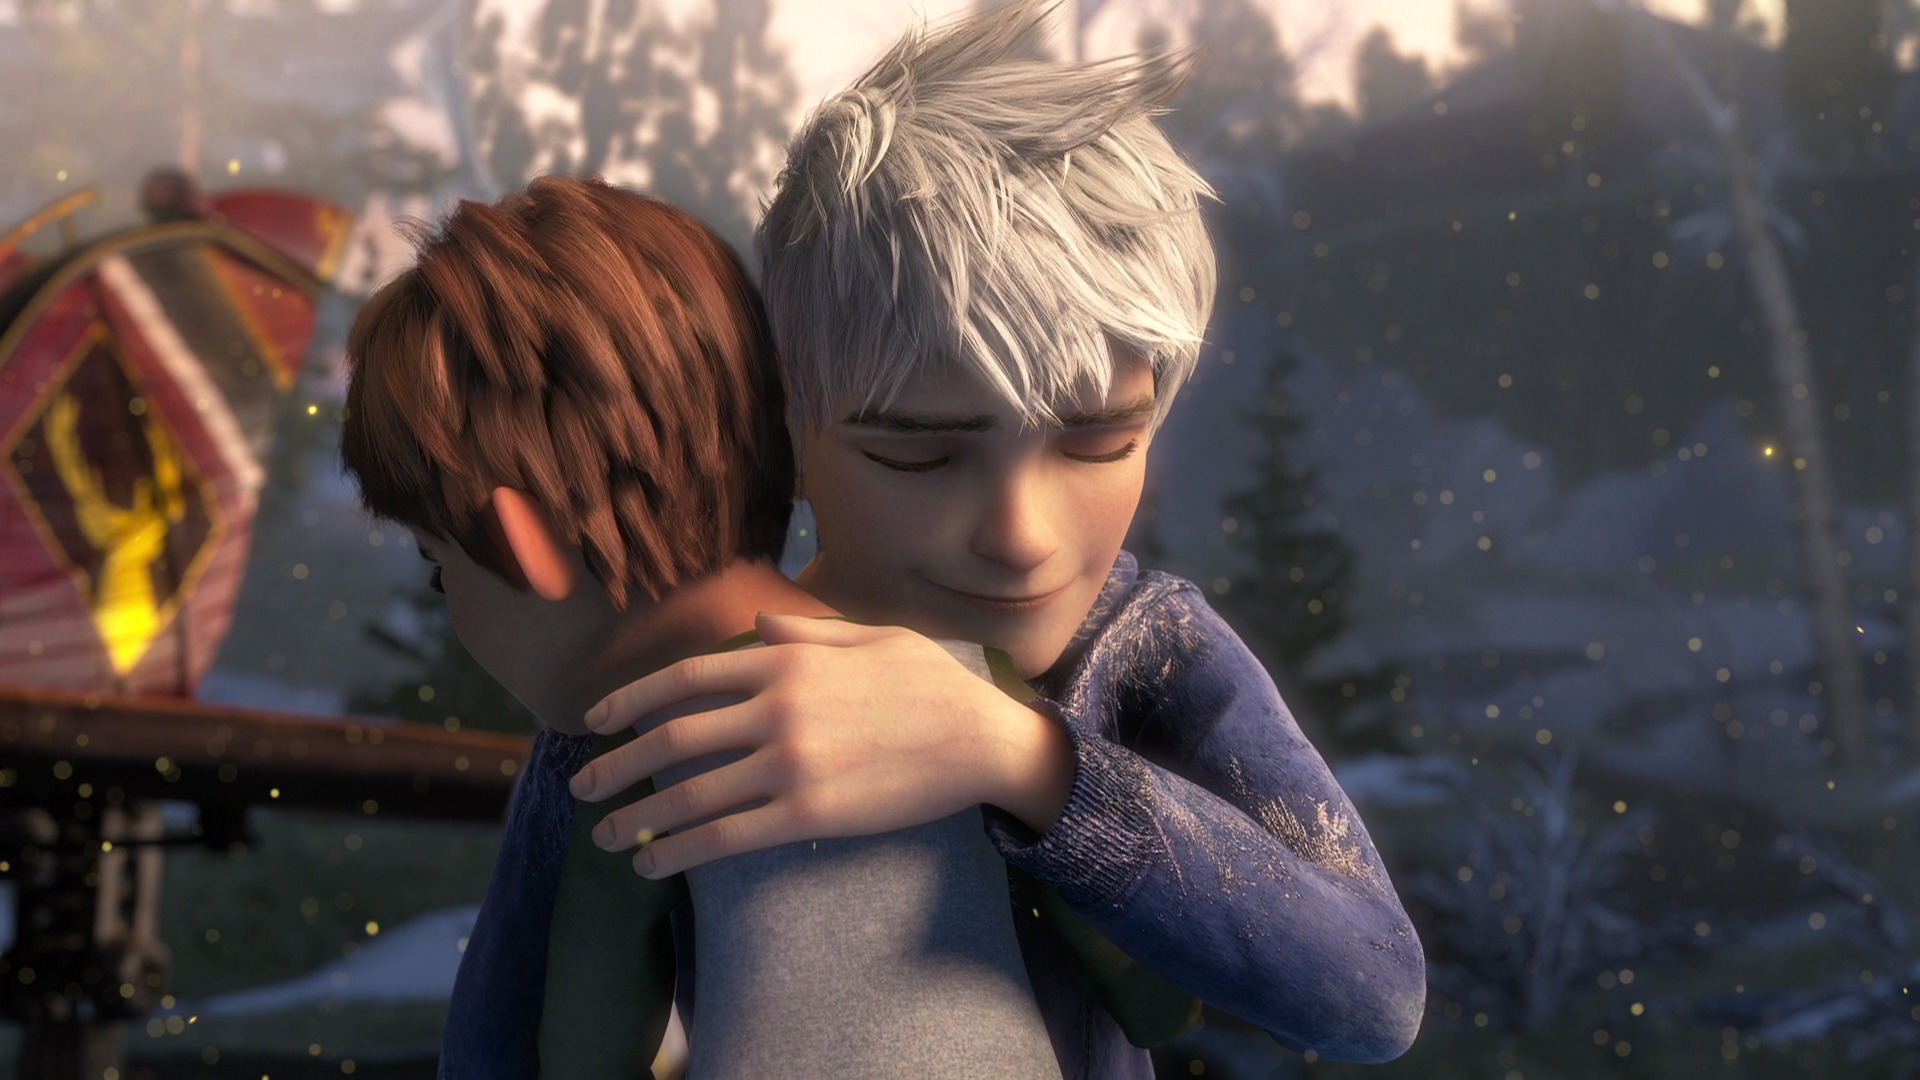 Jack frost rise of the guardians wiki - Pics of rise of the guardians ...